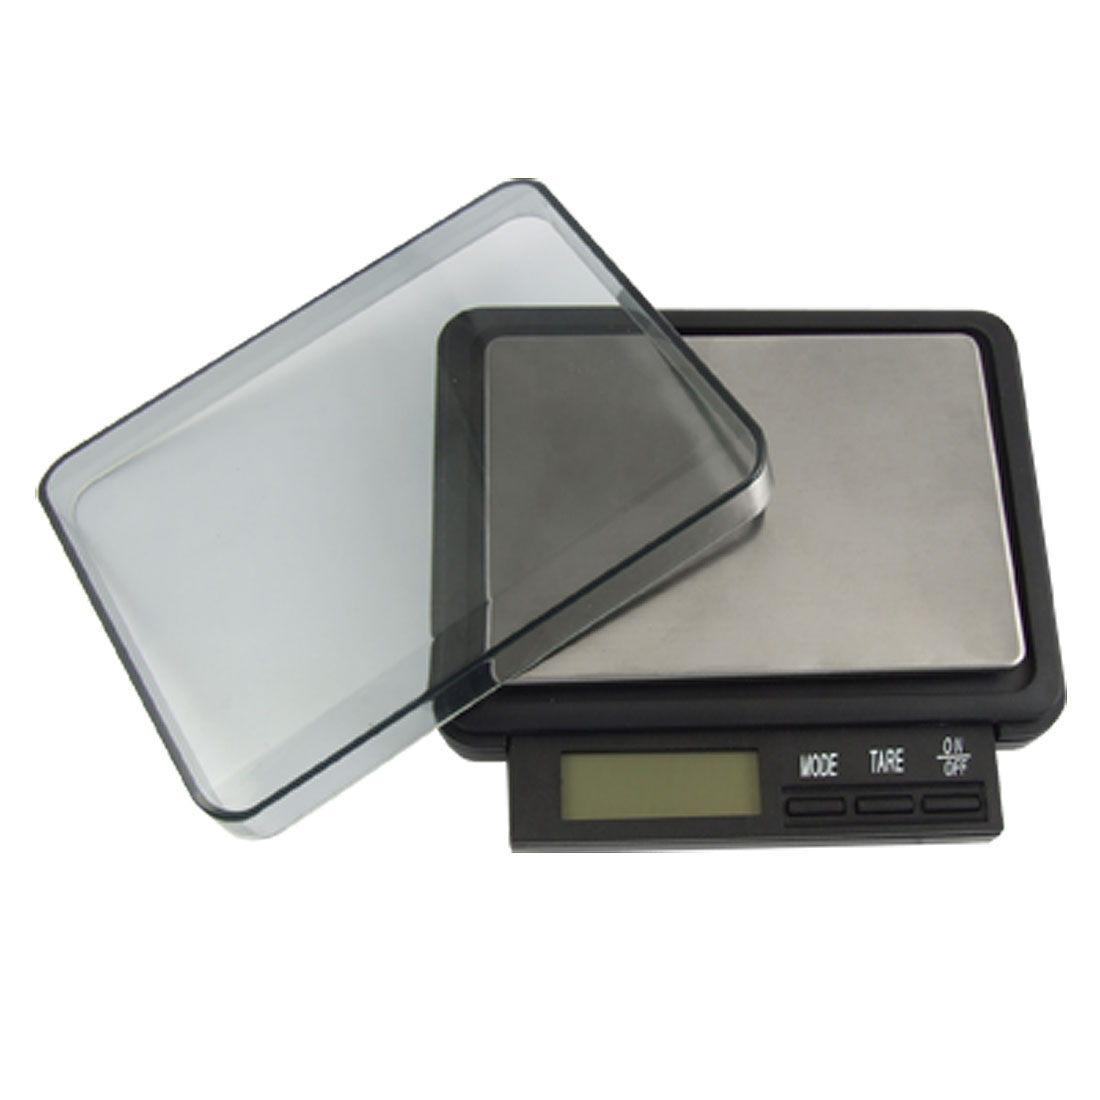 LCD Display Digital Pocket Rectangle Weight Scale Black